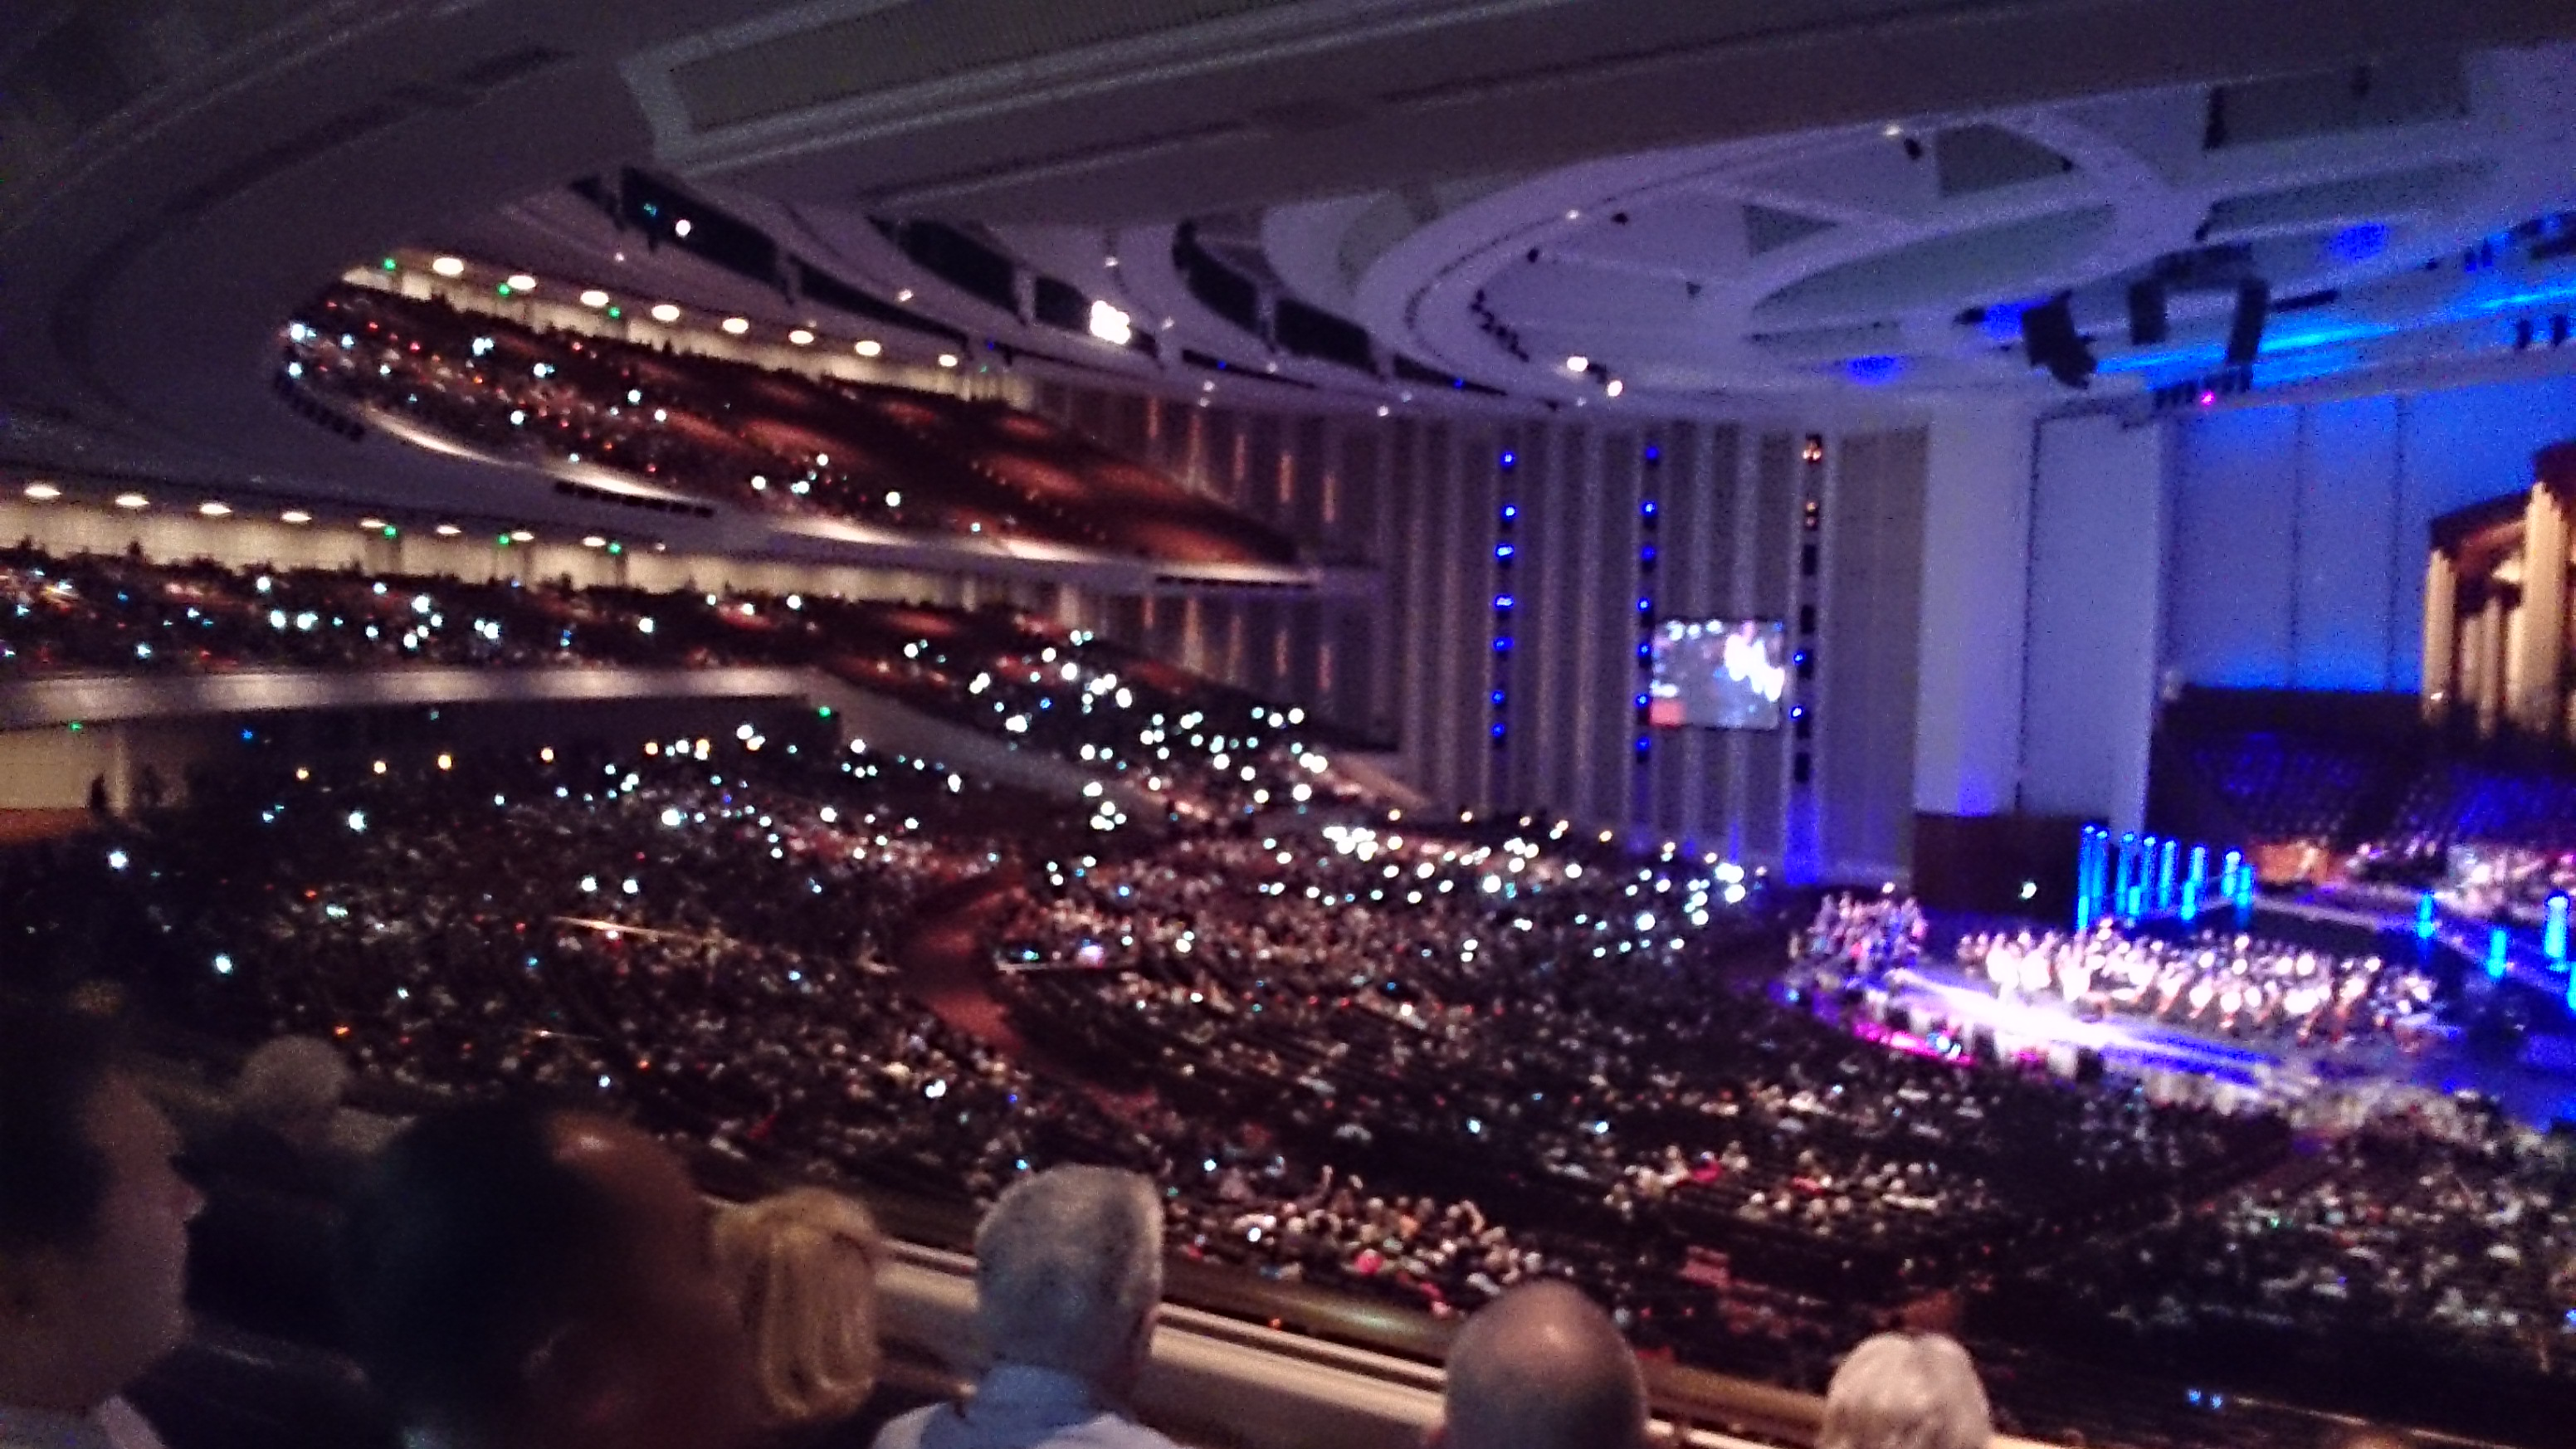 Champaign How Bout' Us Performance in LDS Conf Cntr